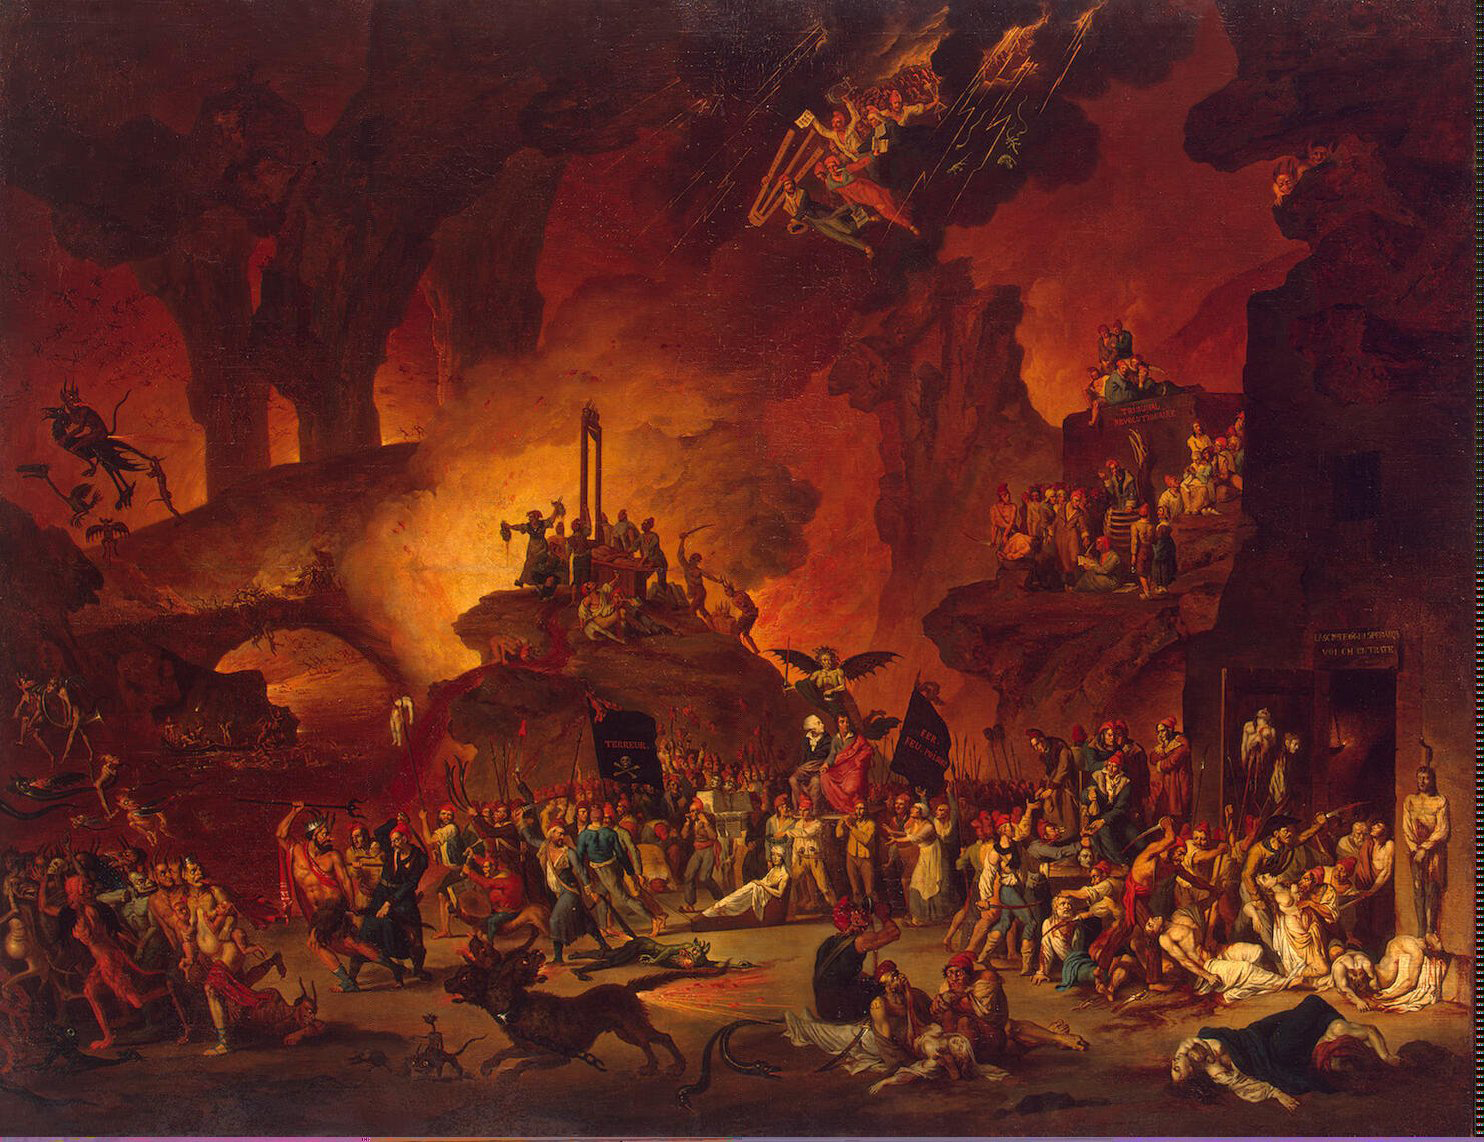 'The Triumph of the Guillotine in Hell' by Nicolas-Antoine Taunay (1795)